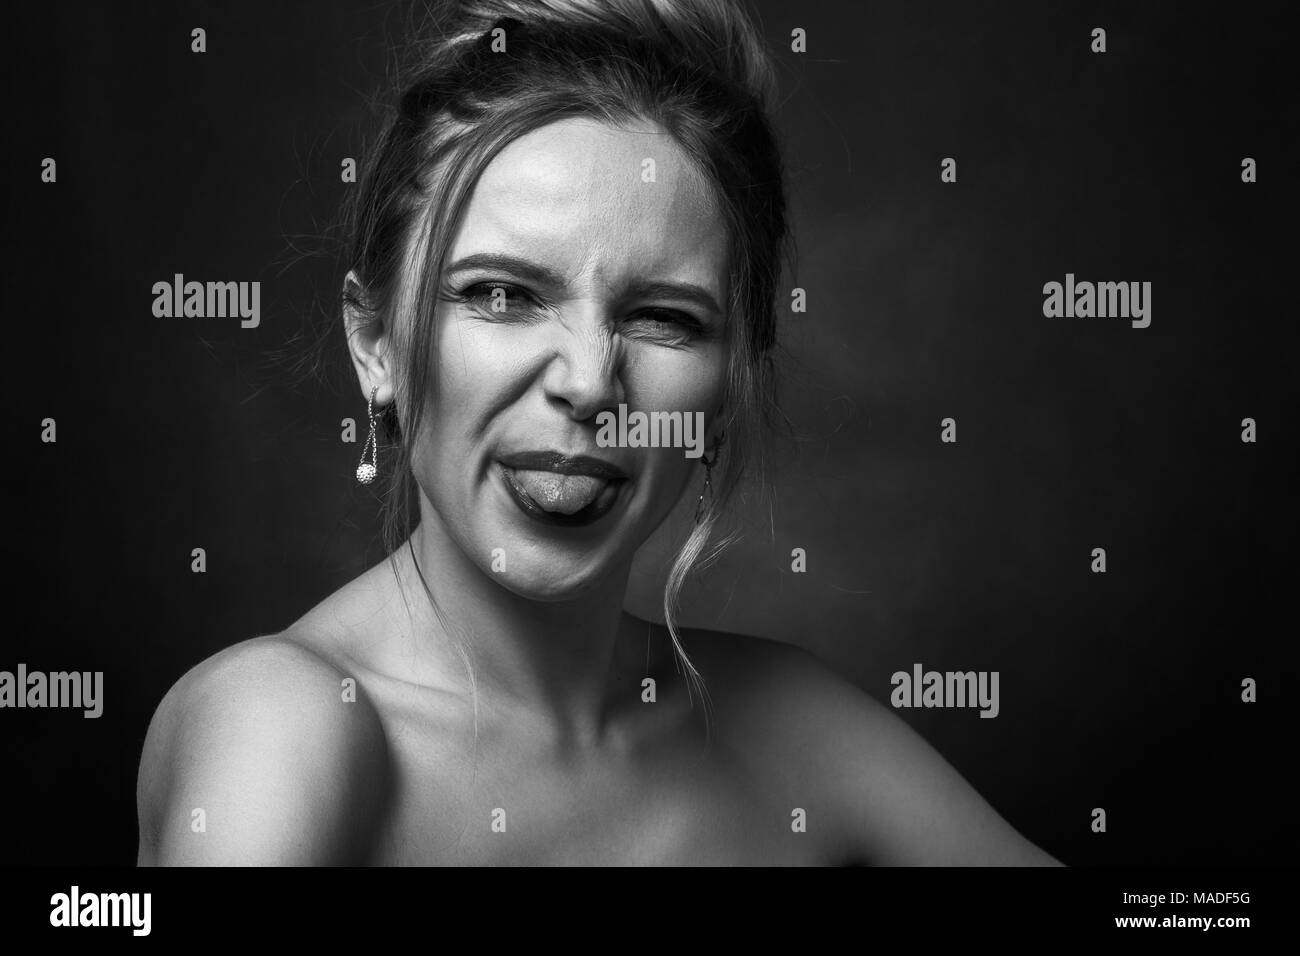 fun woman grimacing show her tongue on black background, monochrome - Stock Image